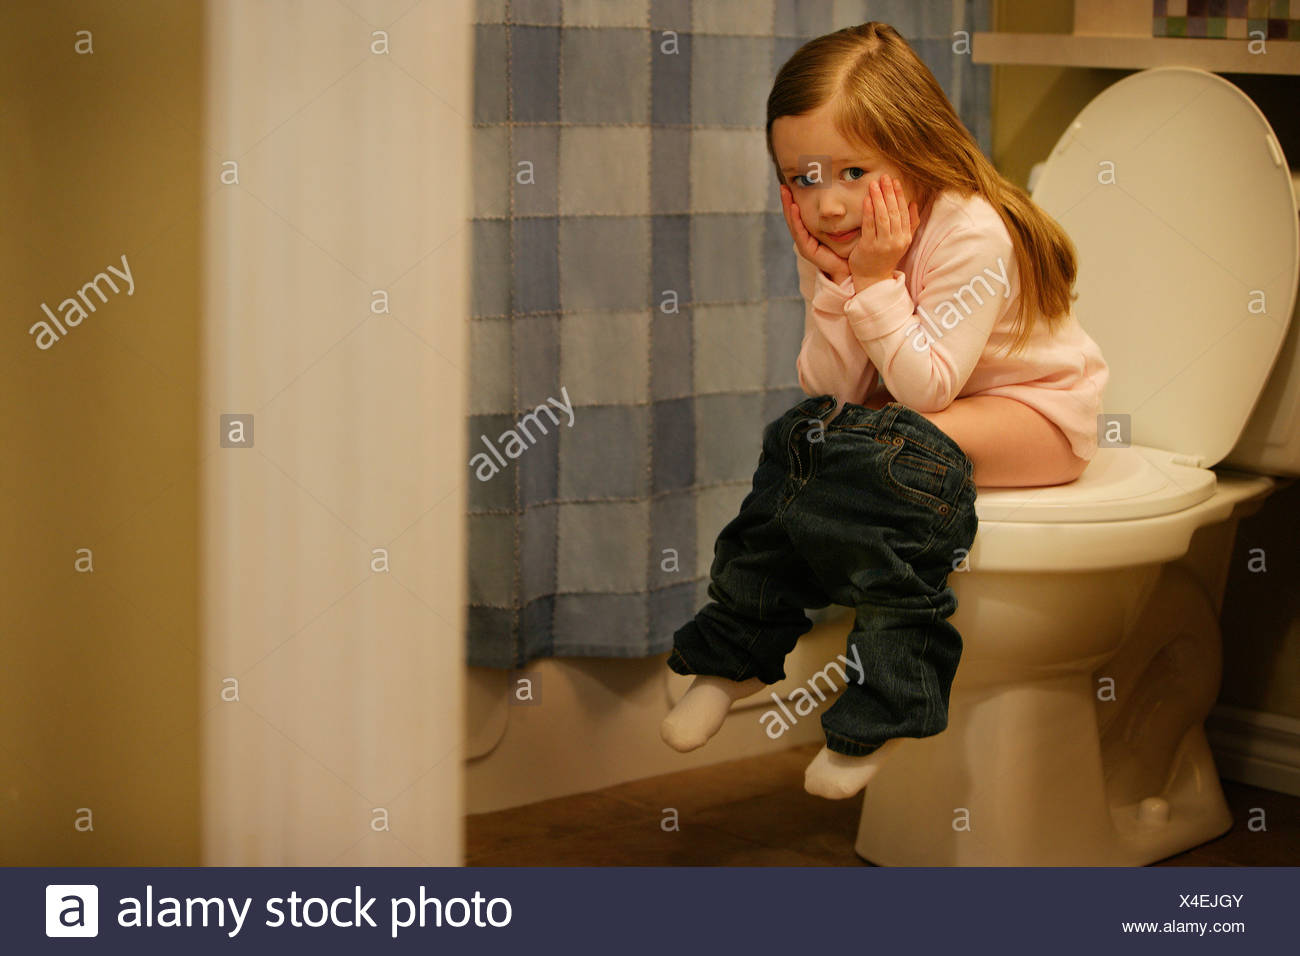 Potty Stock Photos and Pictures | Getty Images